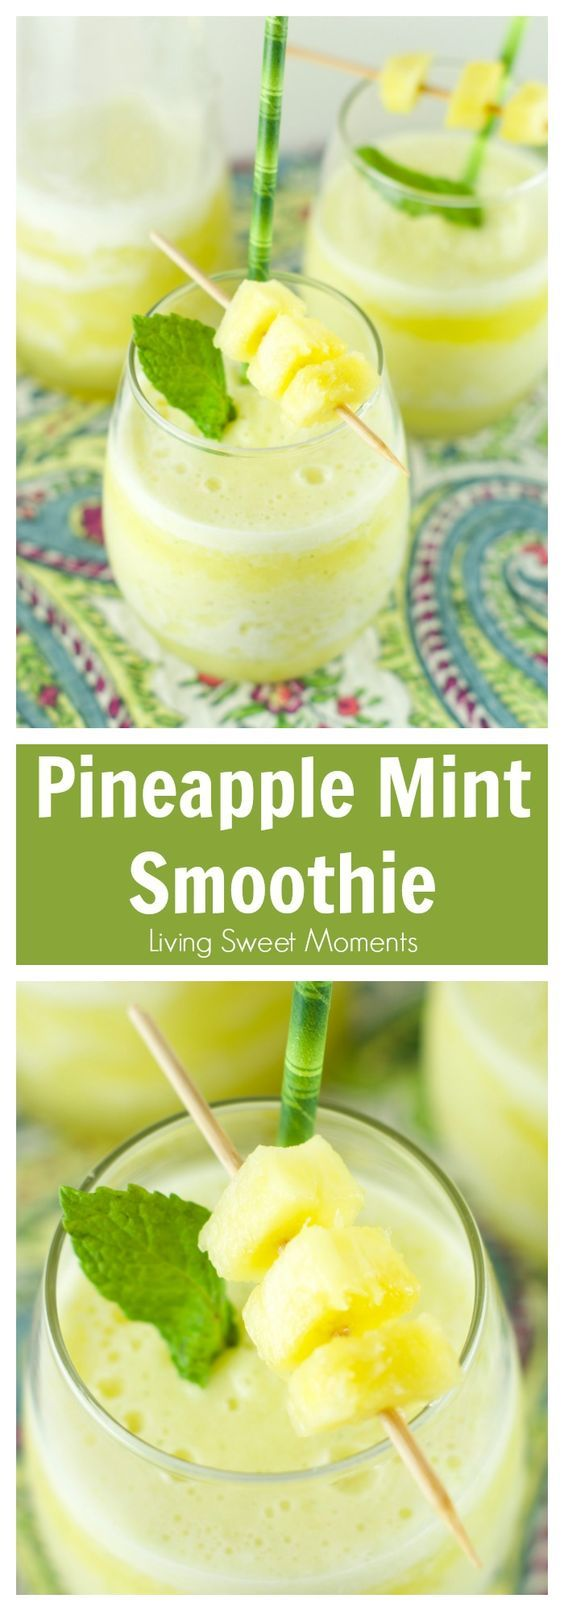 Pineapple Mint Smoothie Recipe - refreshing drink for Spring and Summer. Blended with lot's of ice for an interesting and flavorful healthy tropical beverage without booze. More on livingsweetmoments.com